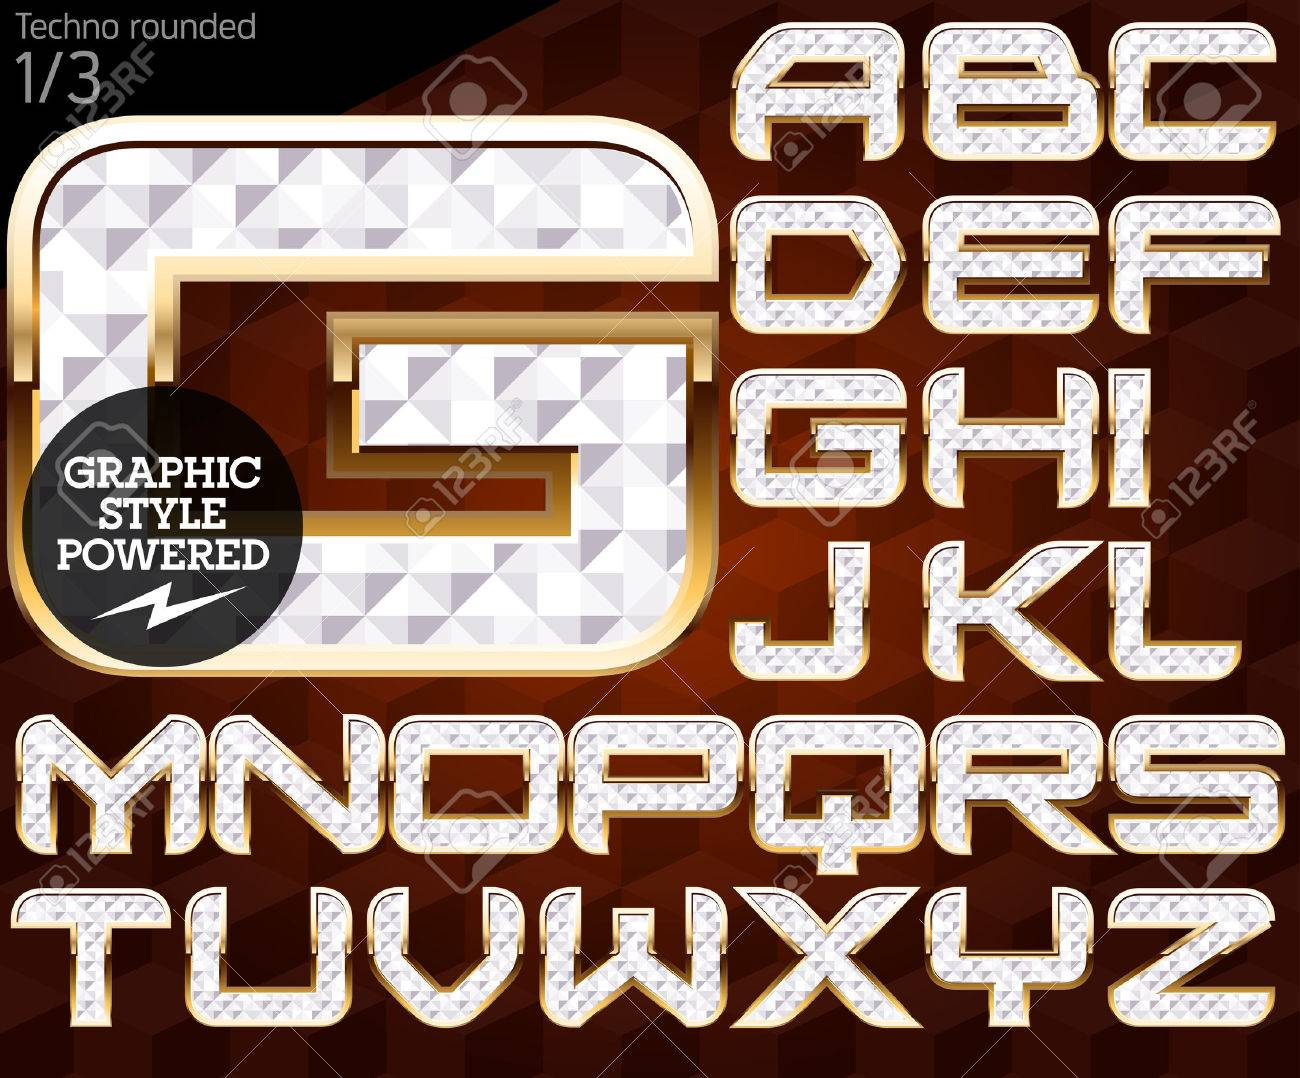 Shiny font of gold and diamond vector illustration  Techno rounded